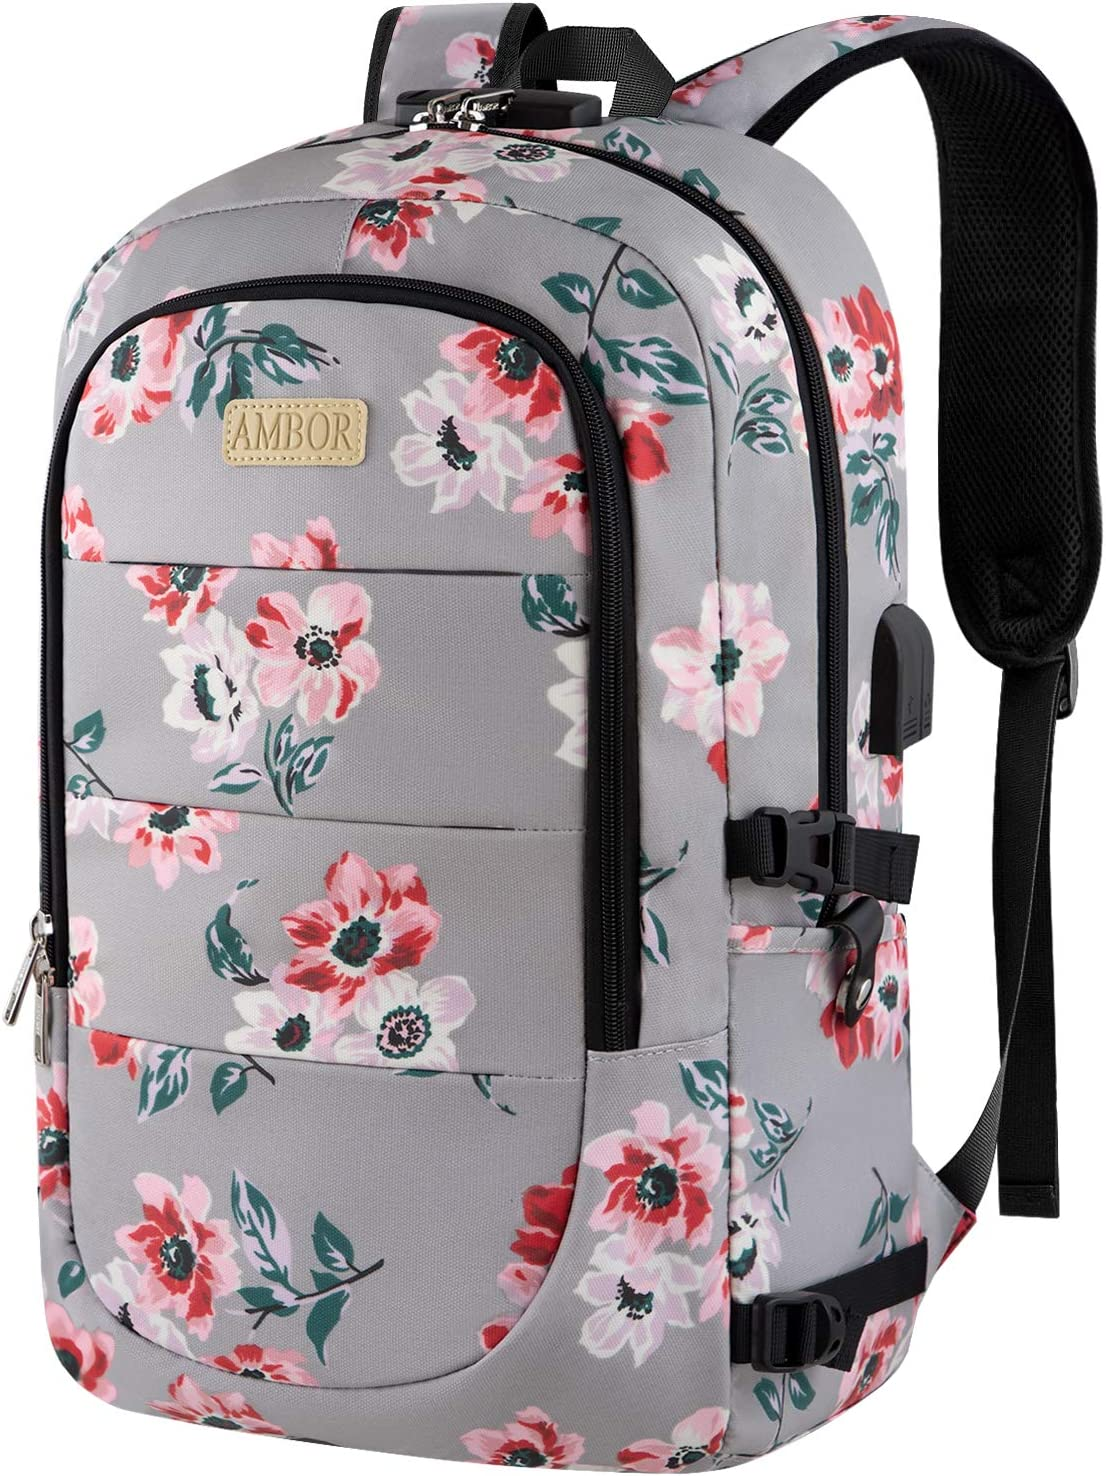 Laptop Backpack, 17.3 Inch Anti Theft Travel Business Laptop Backpack Bag with USB Port and Lock, College School Bookbag Computer Backpack Casual Daypack for Women Girls- Flower3